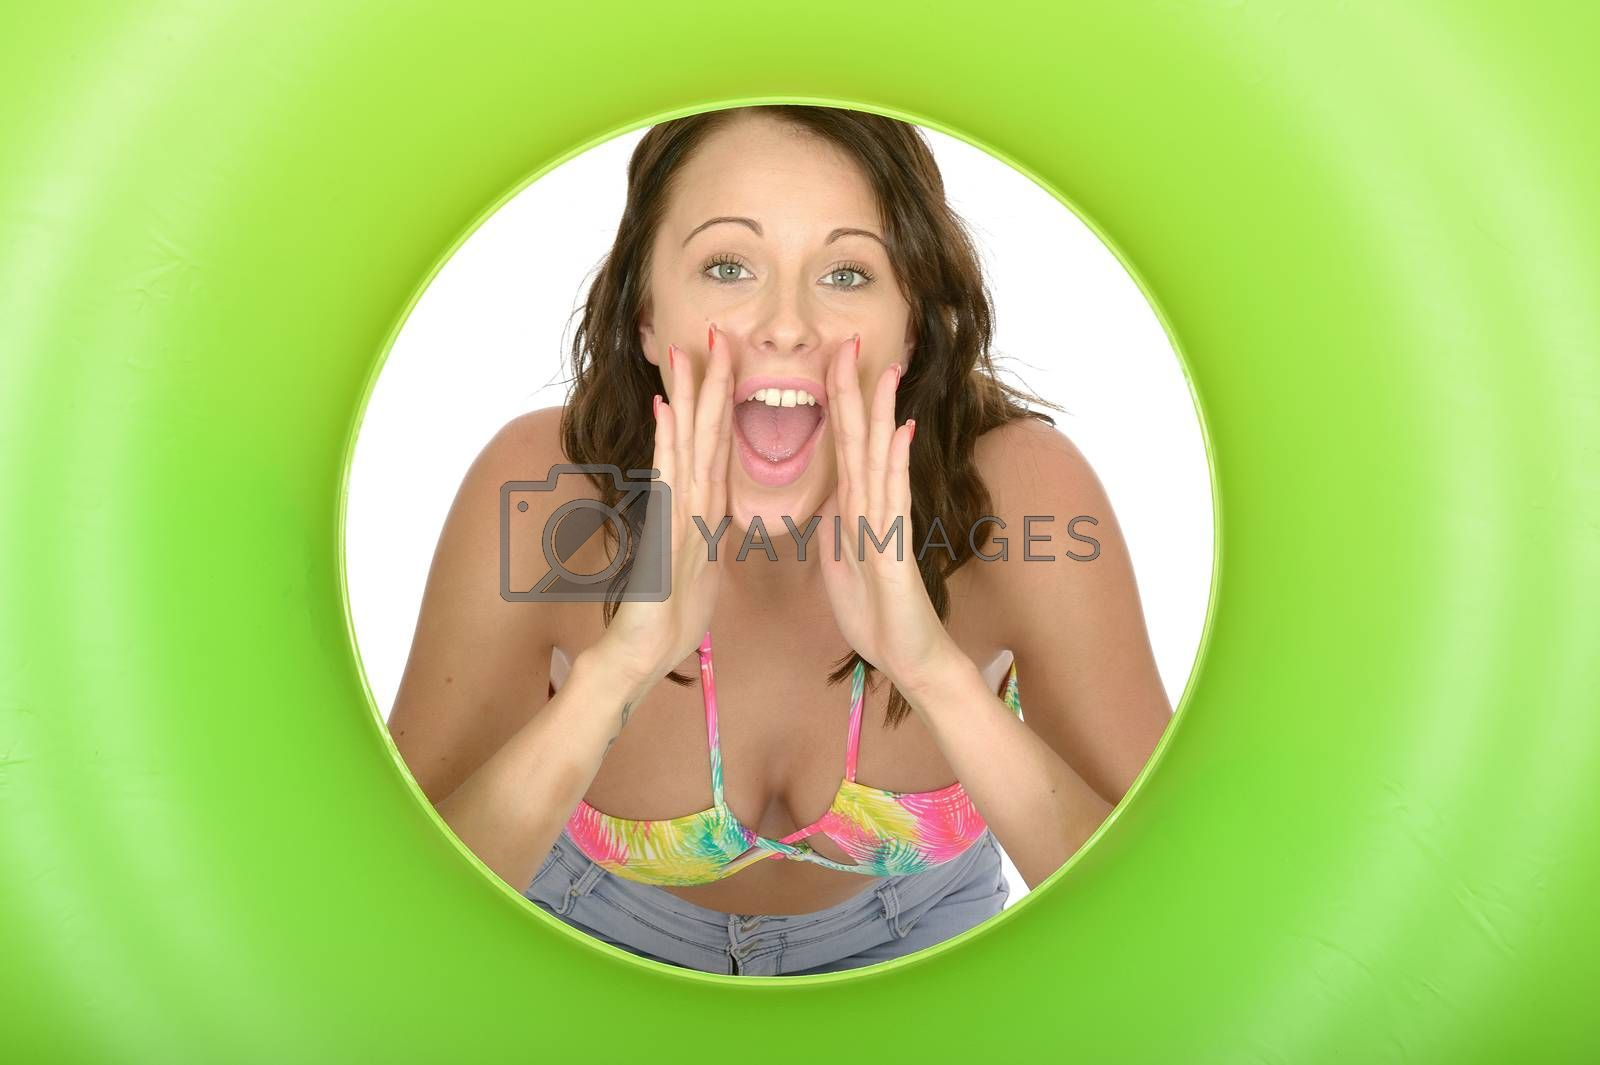 Attractive Young Woman Looking Through a Green Rubber Ring Shouting